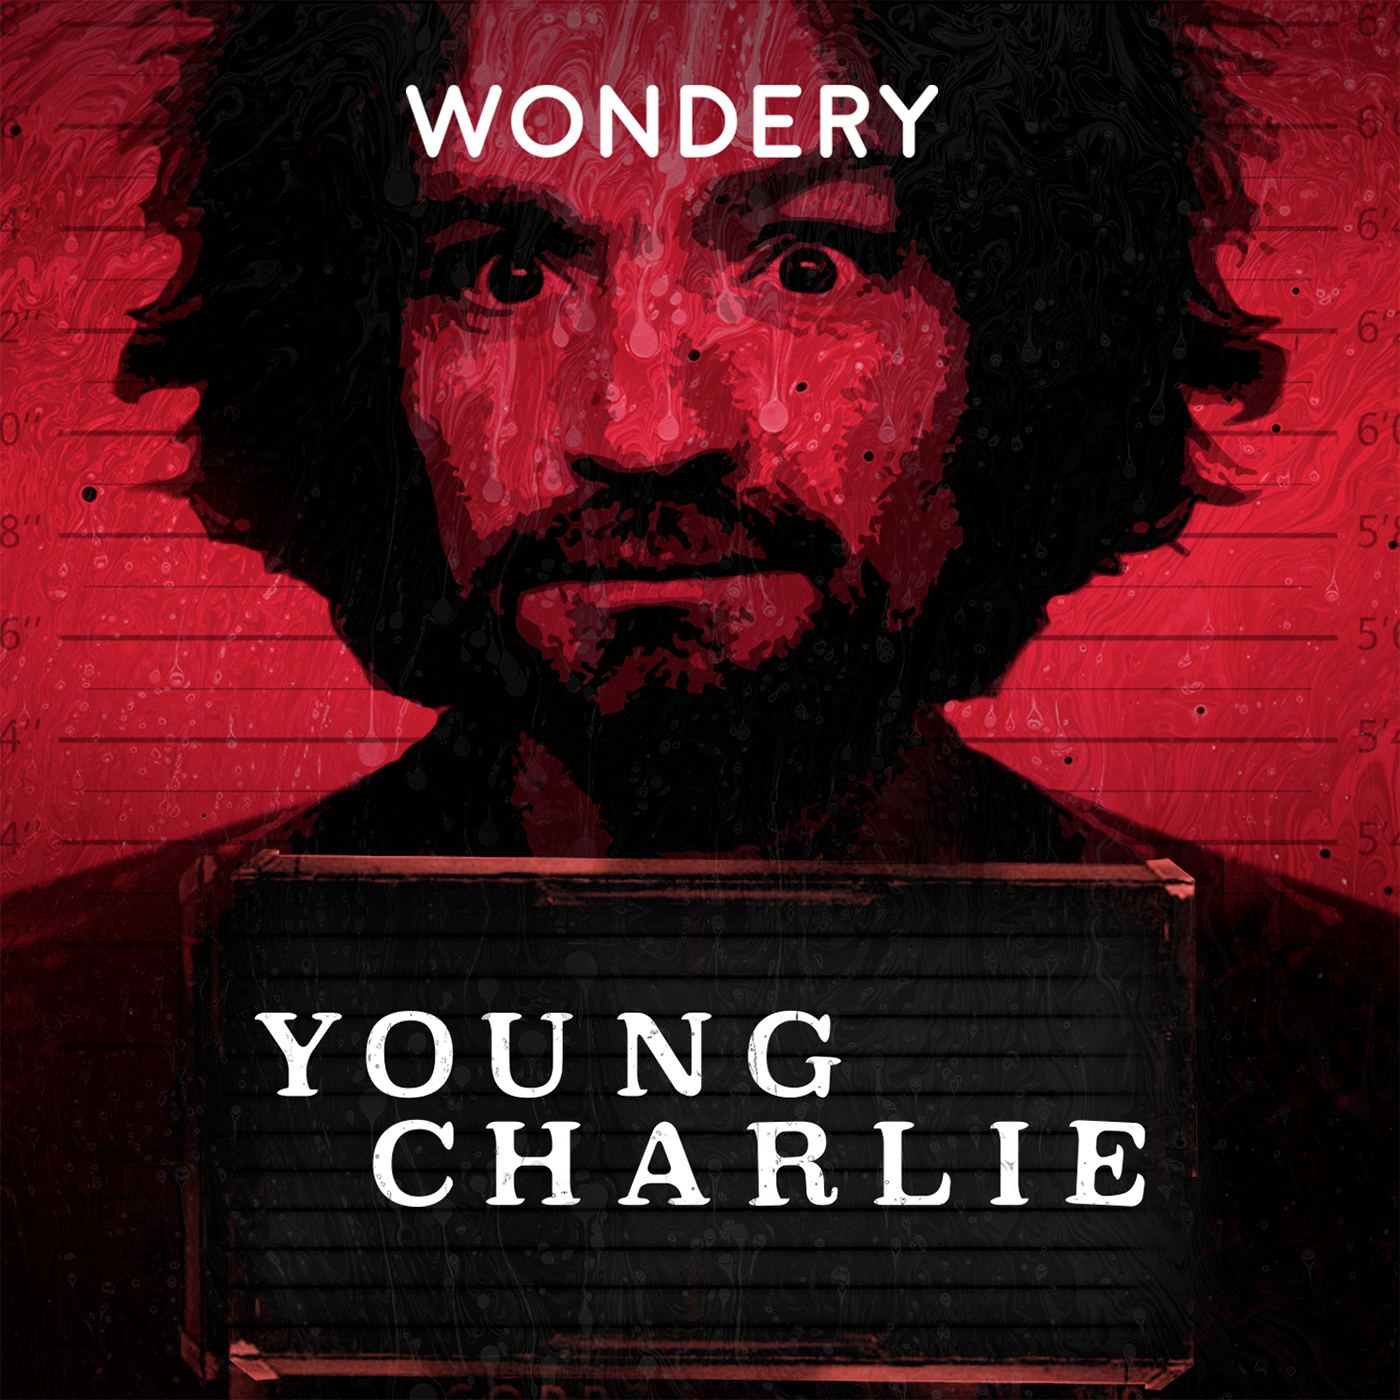 Young Charlie (Wondery)